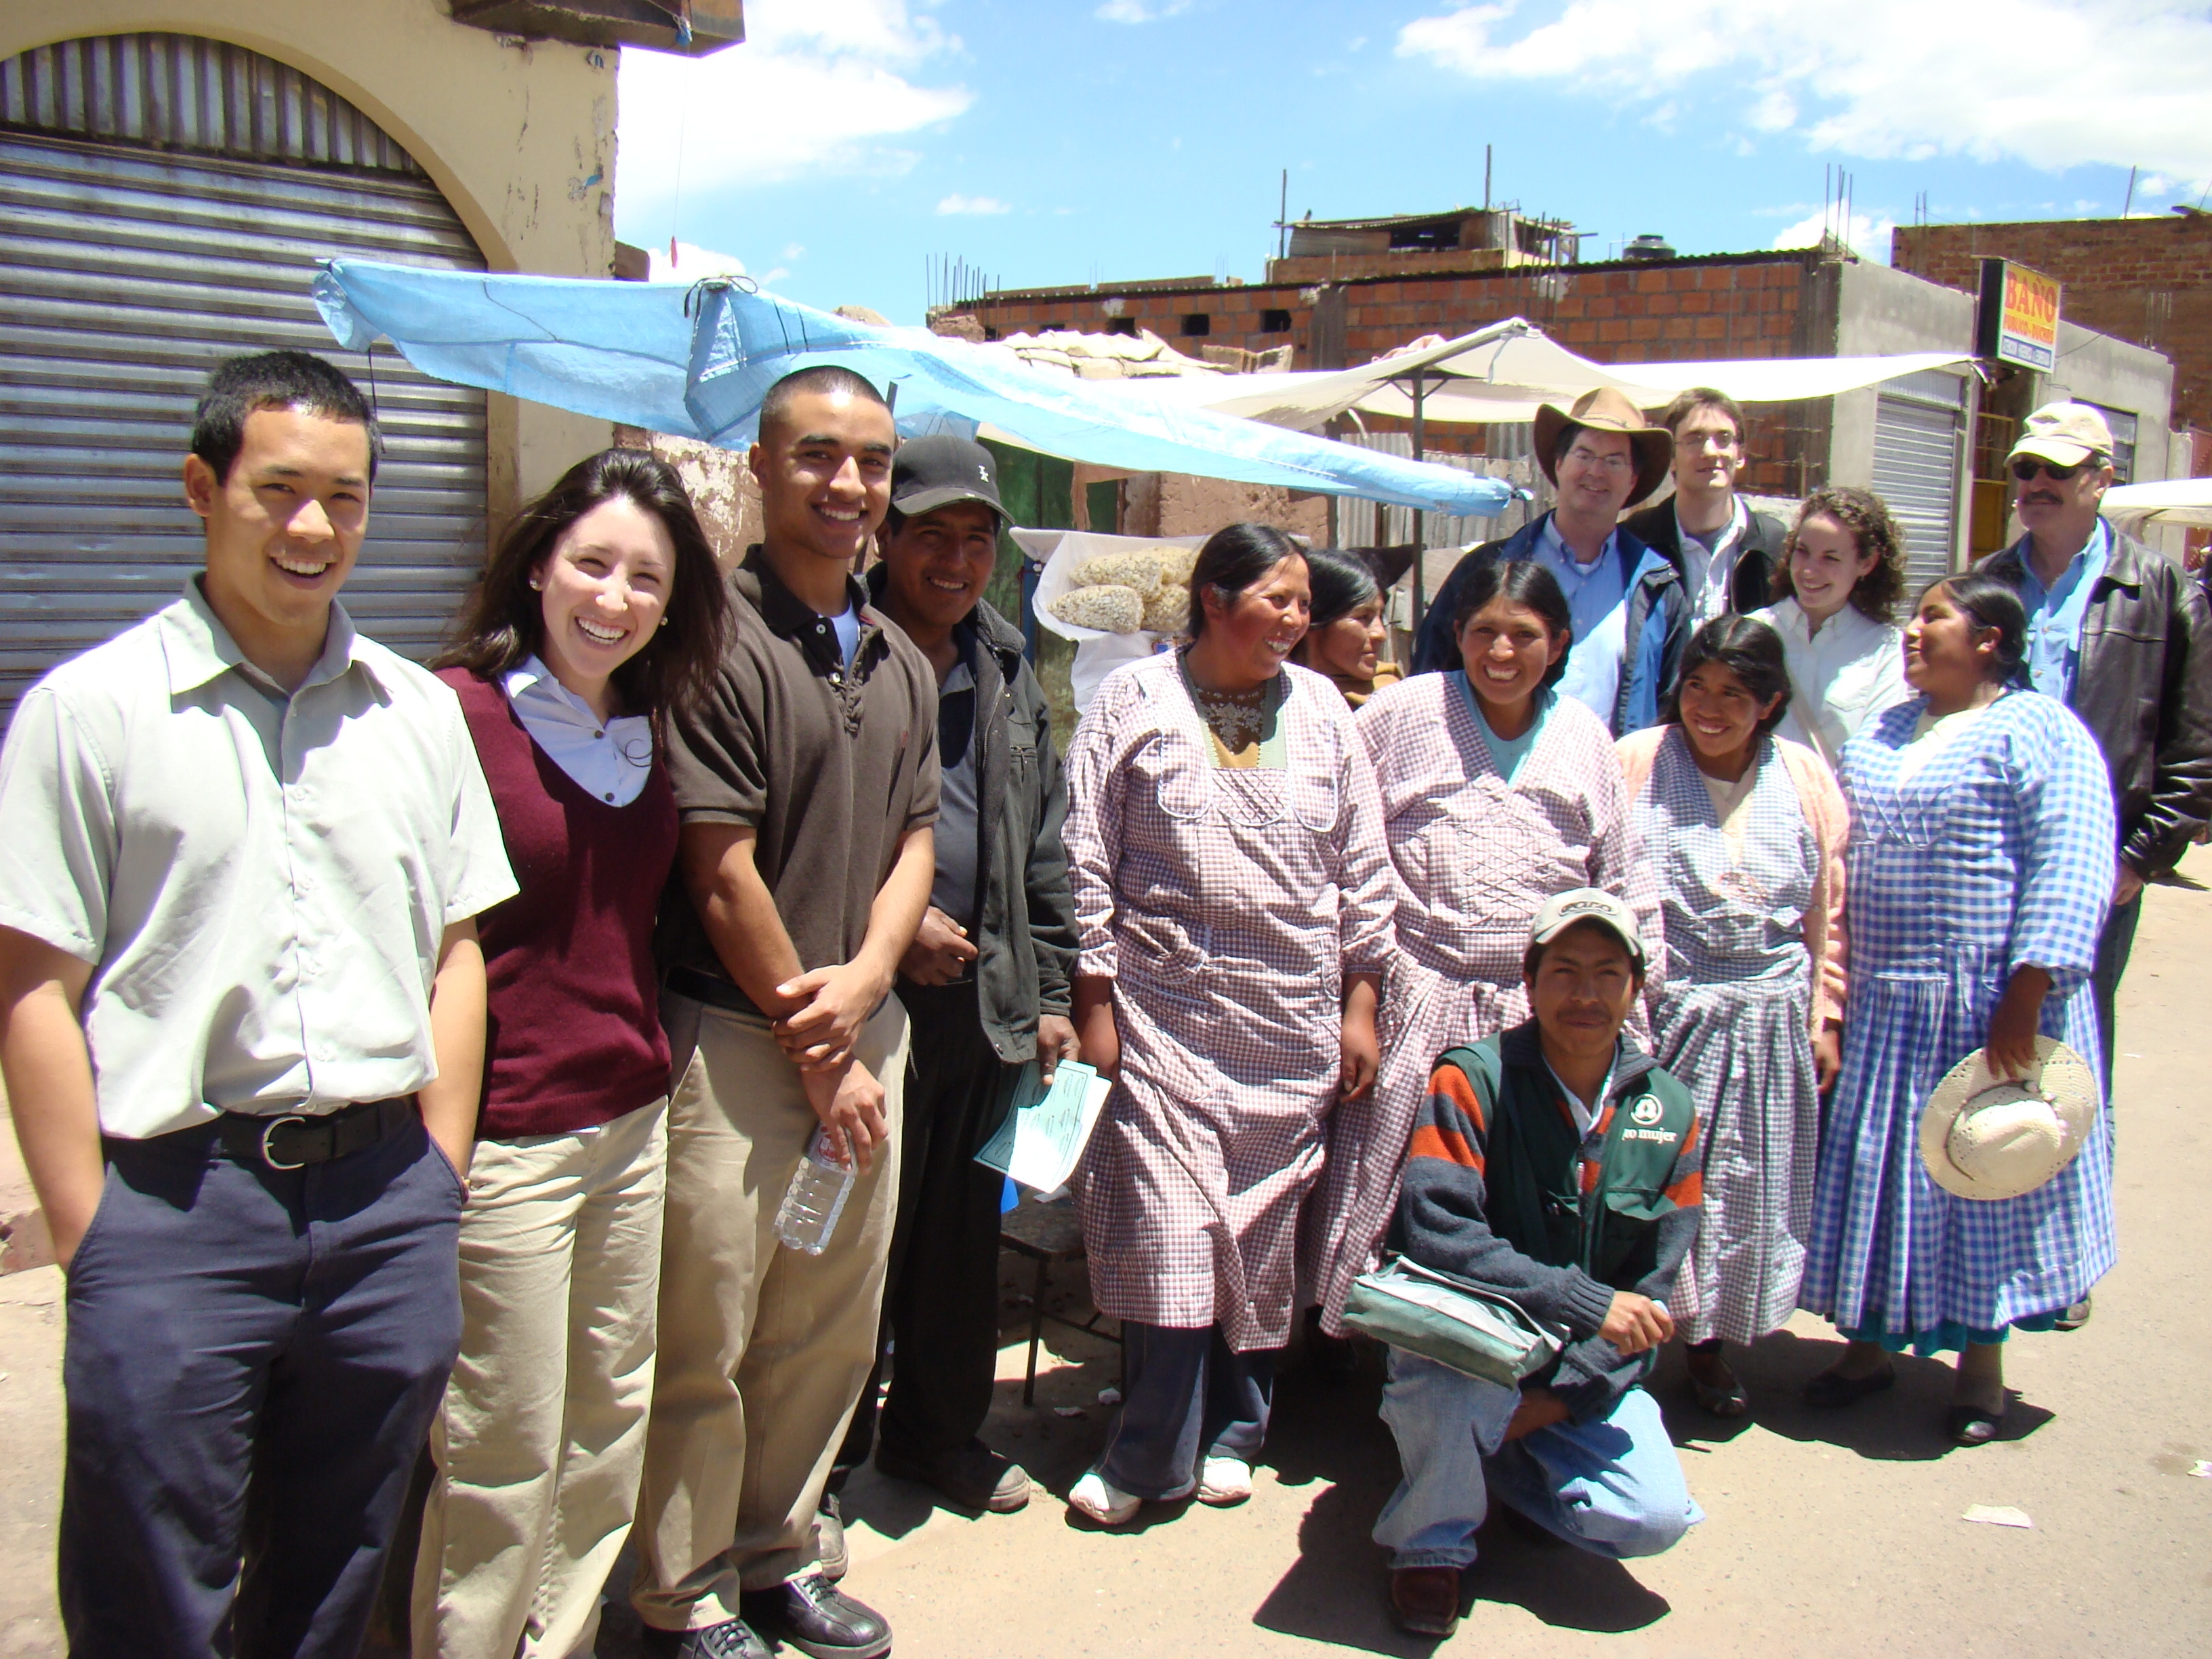 Professor Todd Watkins (back row, third from right) and students with microfinance clients in Peru. Todd Watkins and his students are working on a microfinance textbook.